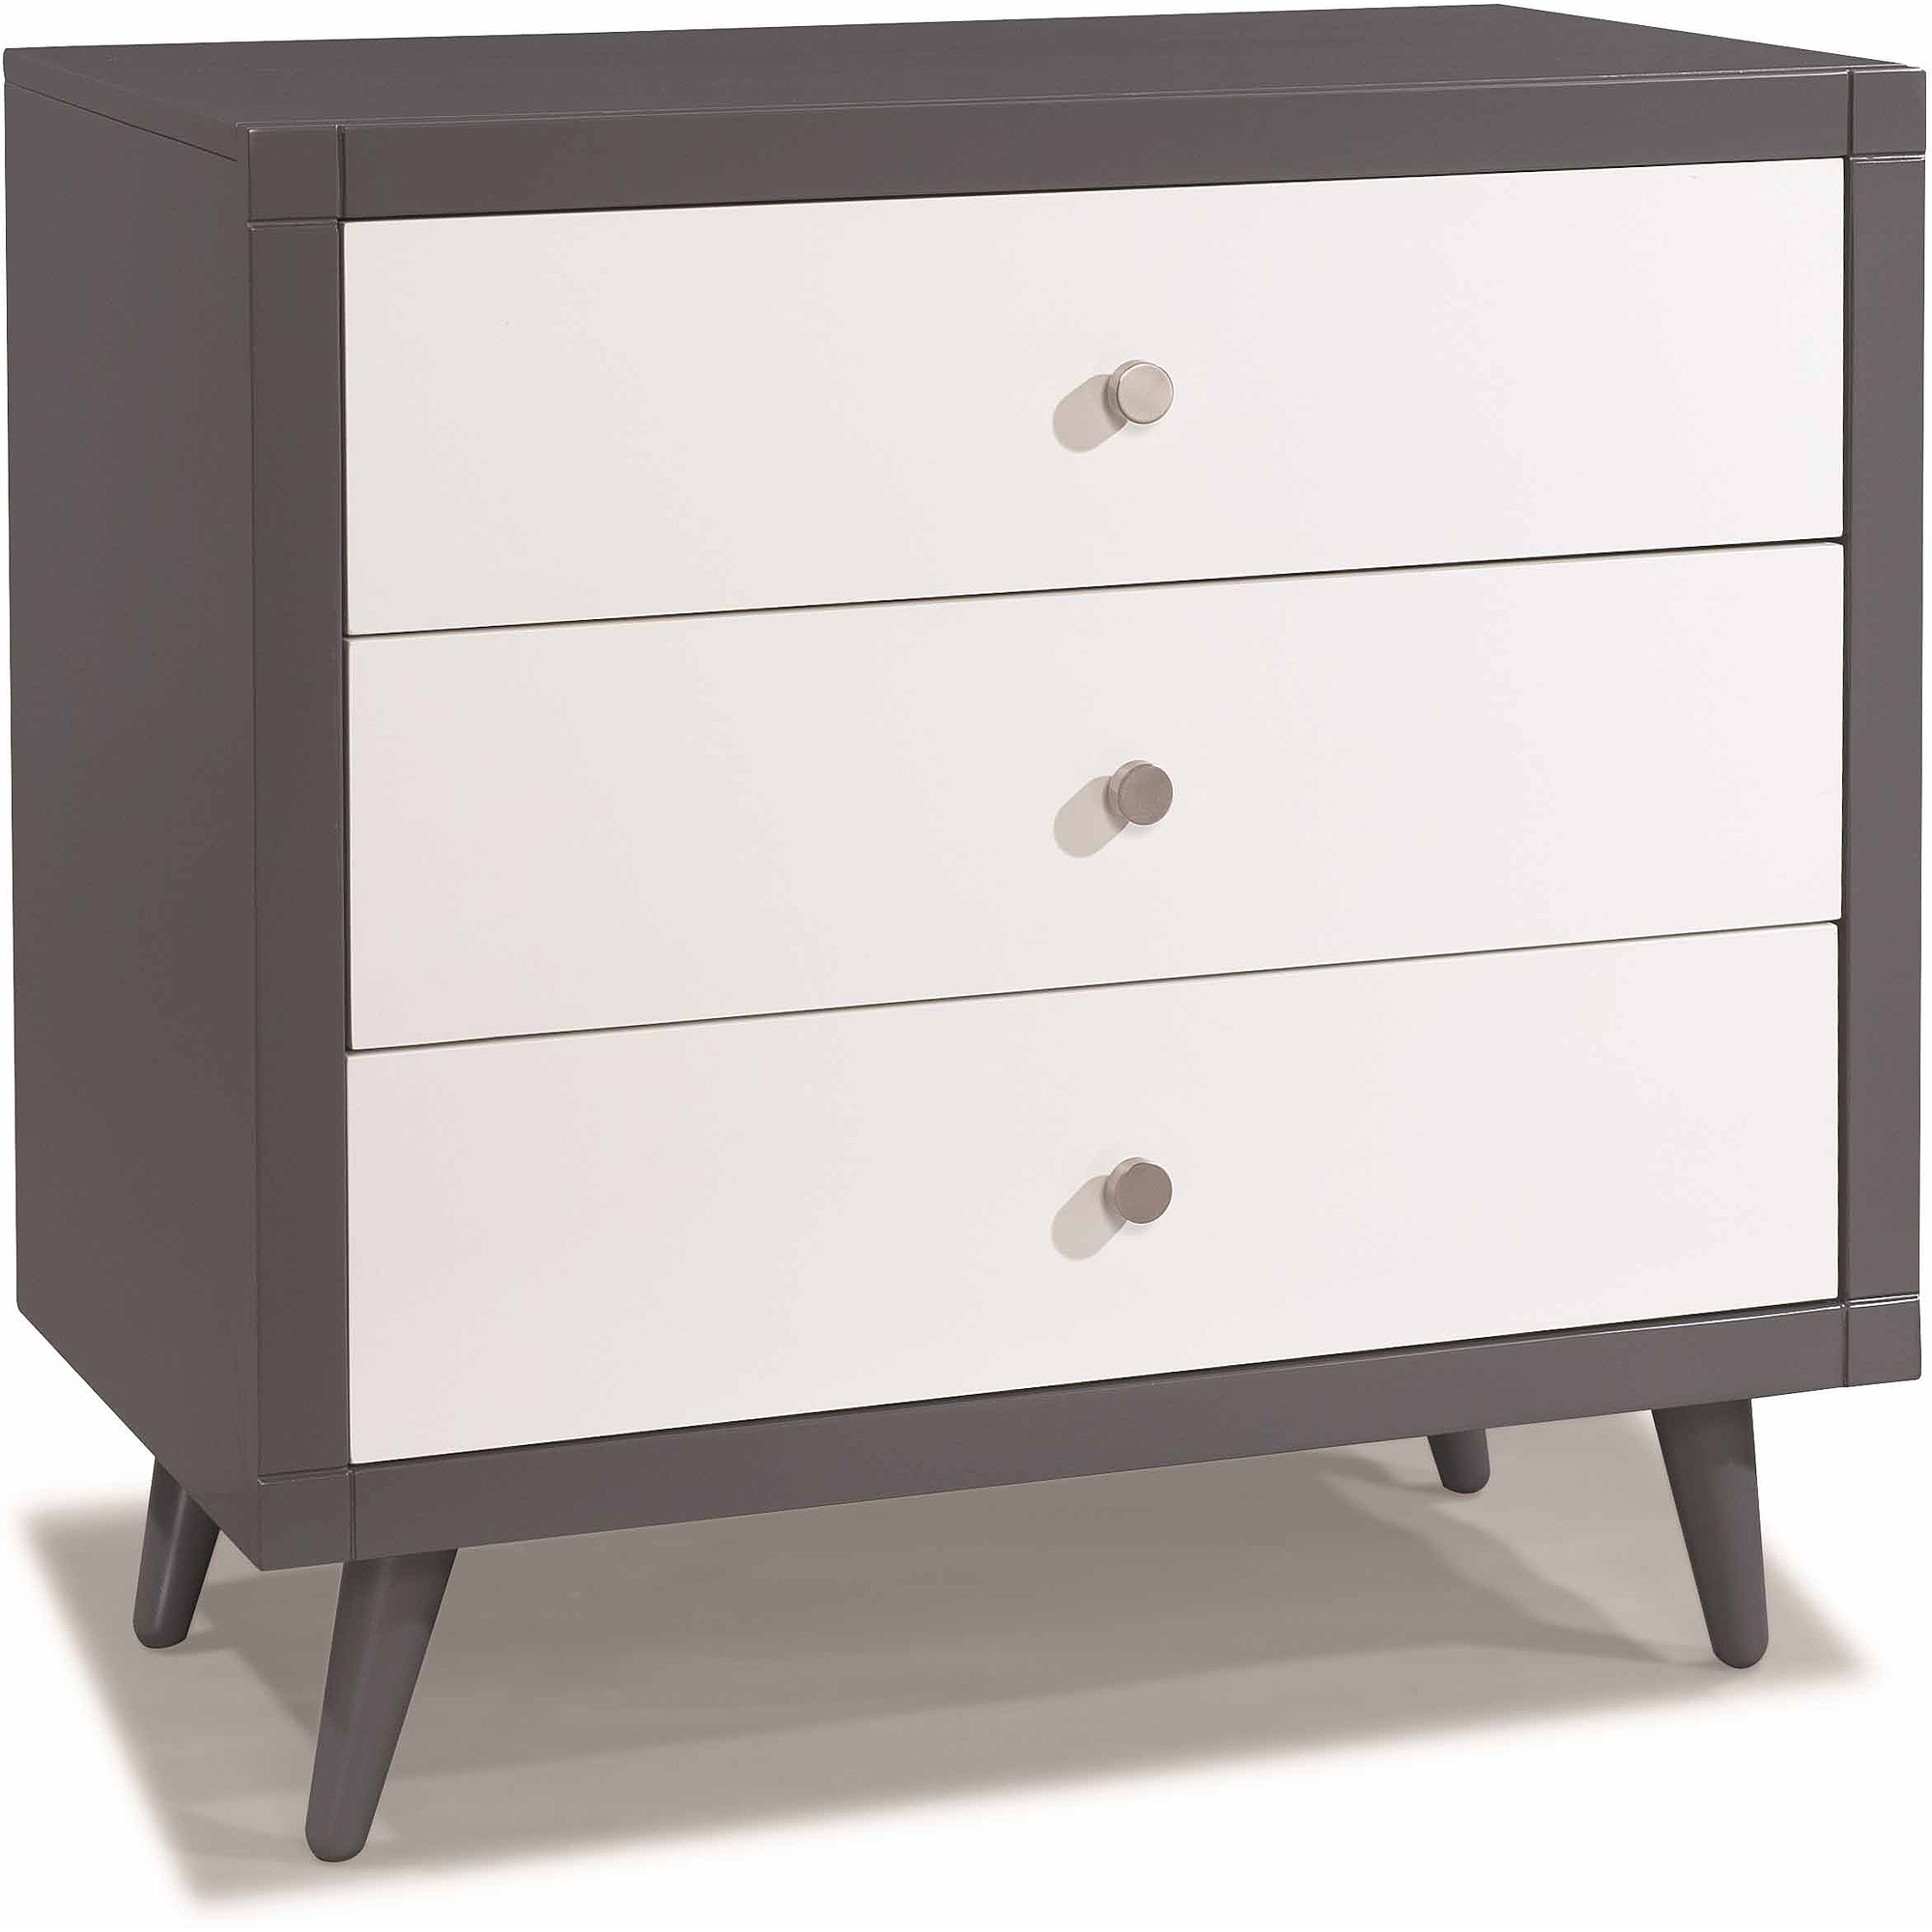 Storkcraft Two-Tone Bayshore 3-Drawer Dresser, Choose Your Finish